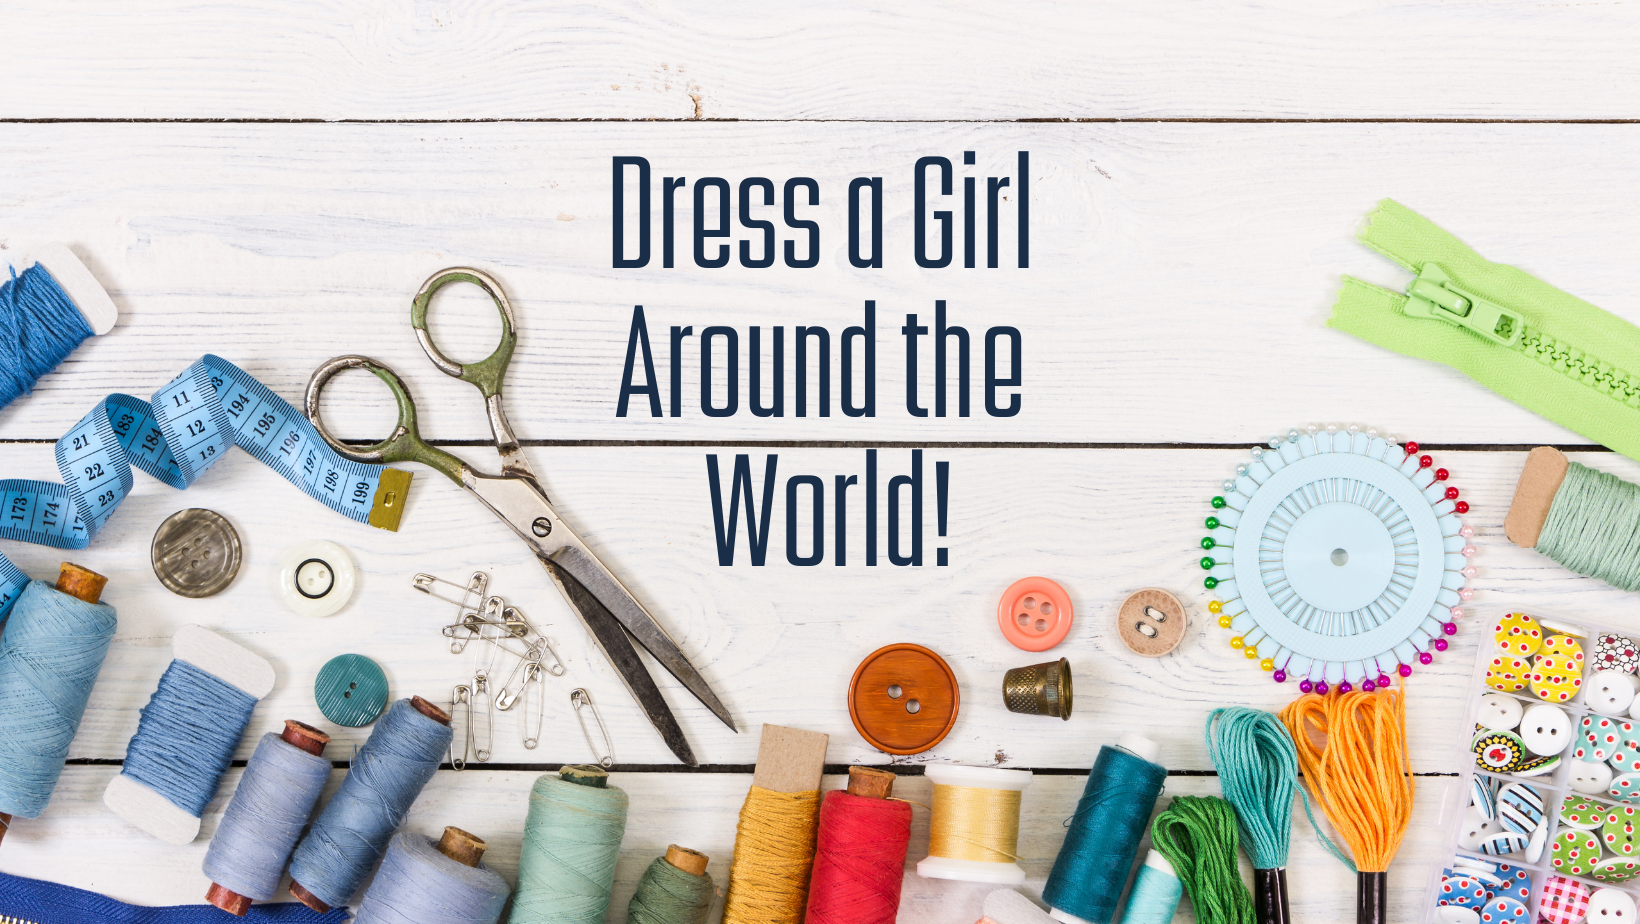 Copy of Dress a Girl Around the World